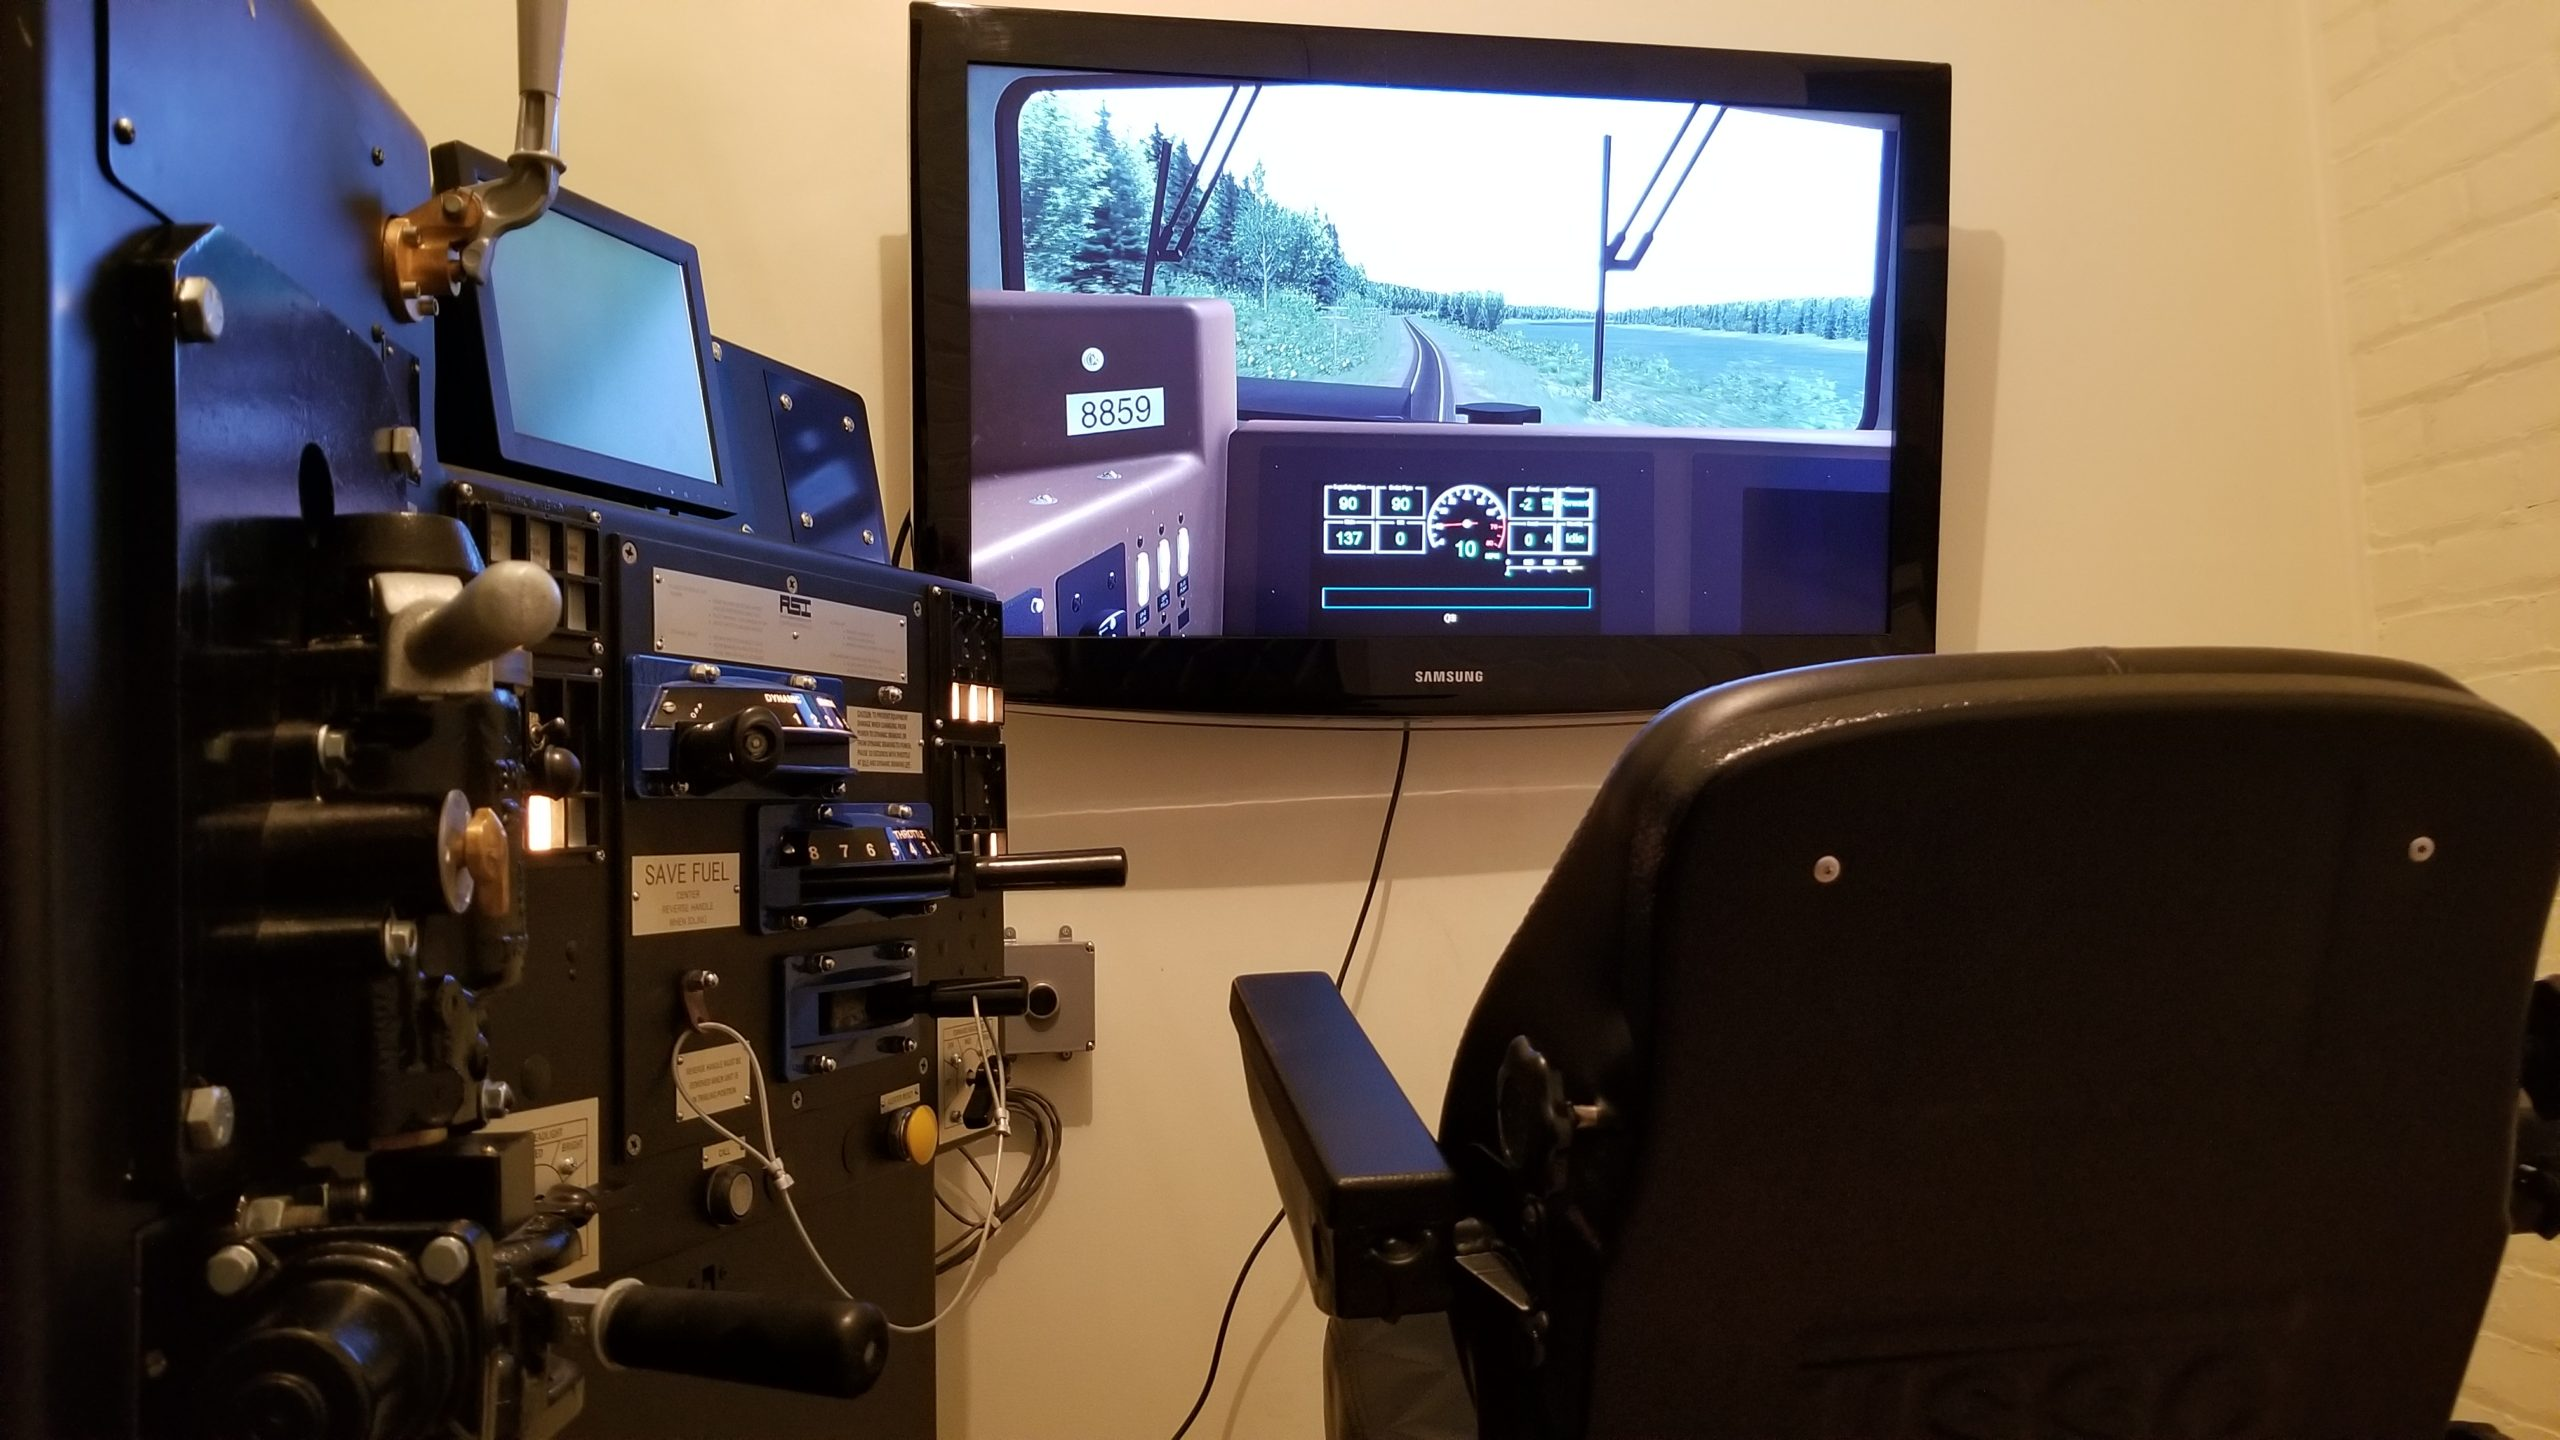 TRAIN SIMULATOR AT HERITAGE CENTRE